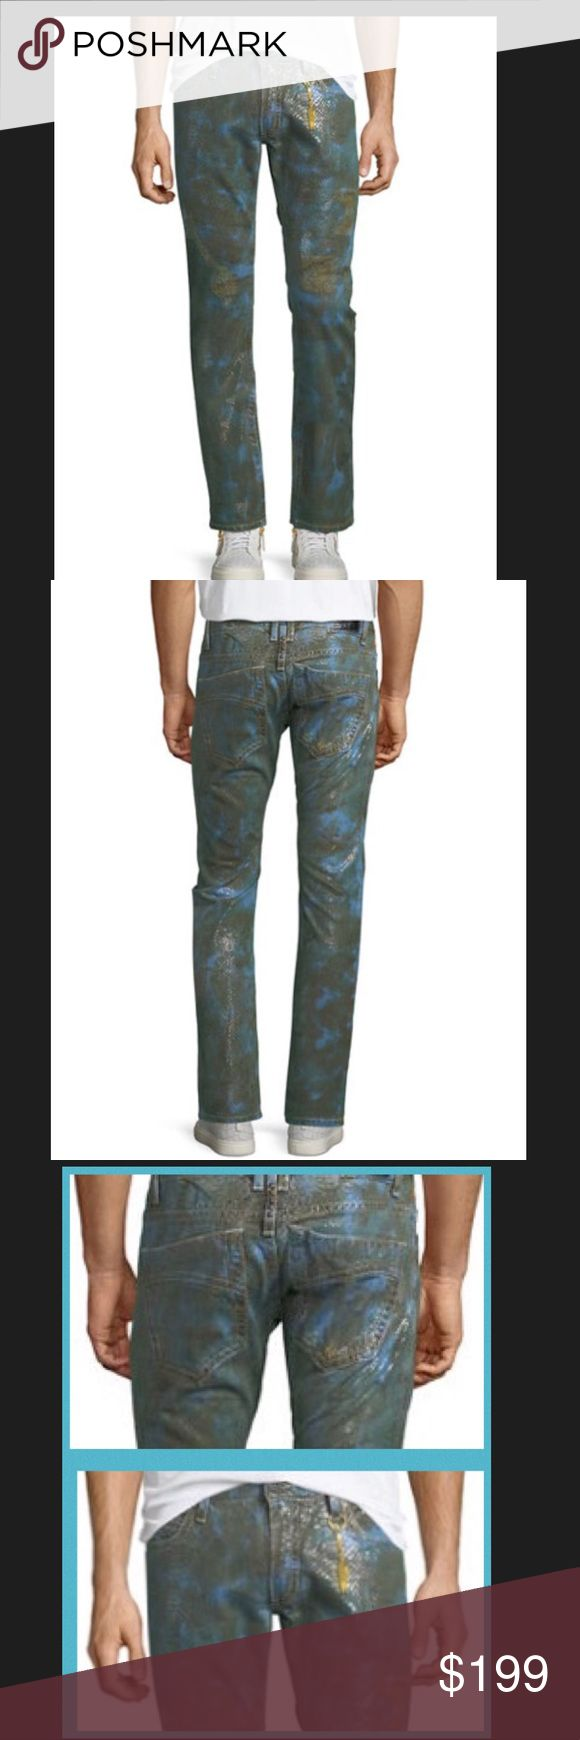 "Men's Robin Marlon Straight Leg Jean Snake Print Distressed Denim •Approx. measurements: 8"" rise; 31"" inseam; 16"" leg opening. •5-pocket style. Signature wing print at back waist. •Straight legs. •Button/zip fly; belt loops. •Cotton; machine wash. Robin's Jean Known for its biker-chic aesthetic, embodies American ethos captured by motorcycles, vintage cars, & open road. Adorned by a set of wings—the brand's symbol—each pair of jeans pays homage to the American dream through non-conformist…"